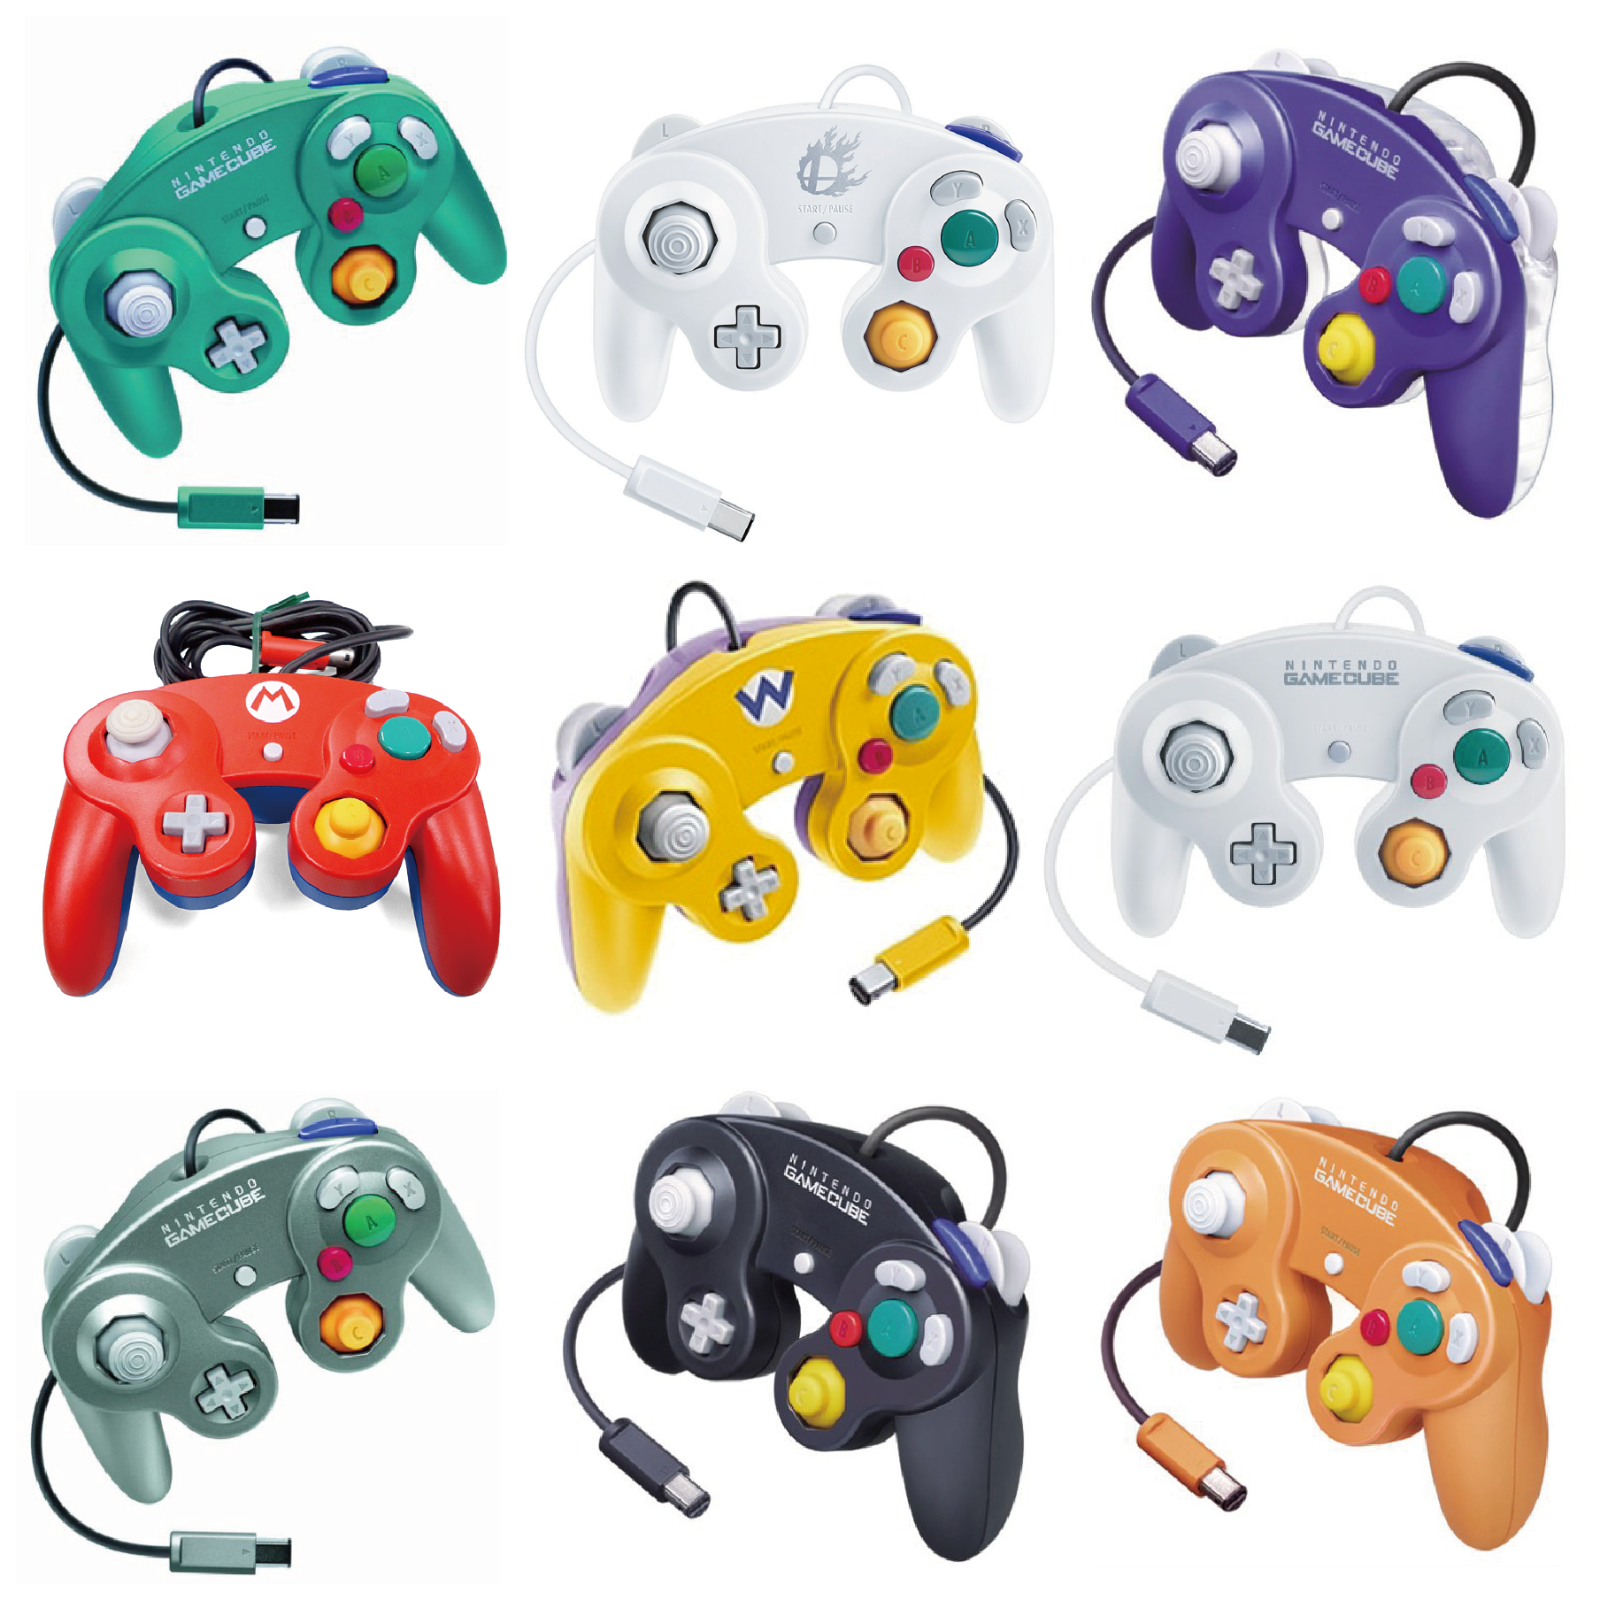 【30 variations】Nintendo Official GameCube controller Various colors 2